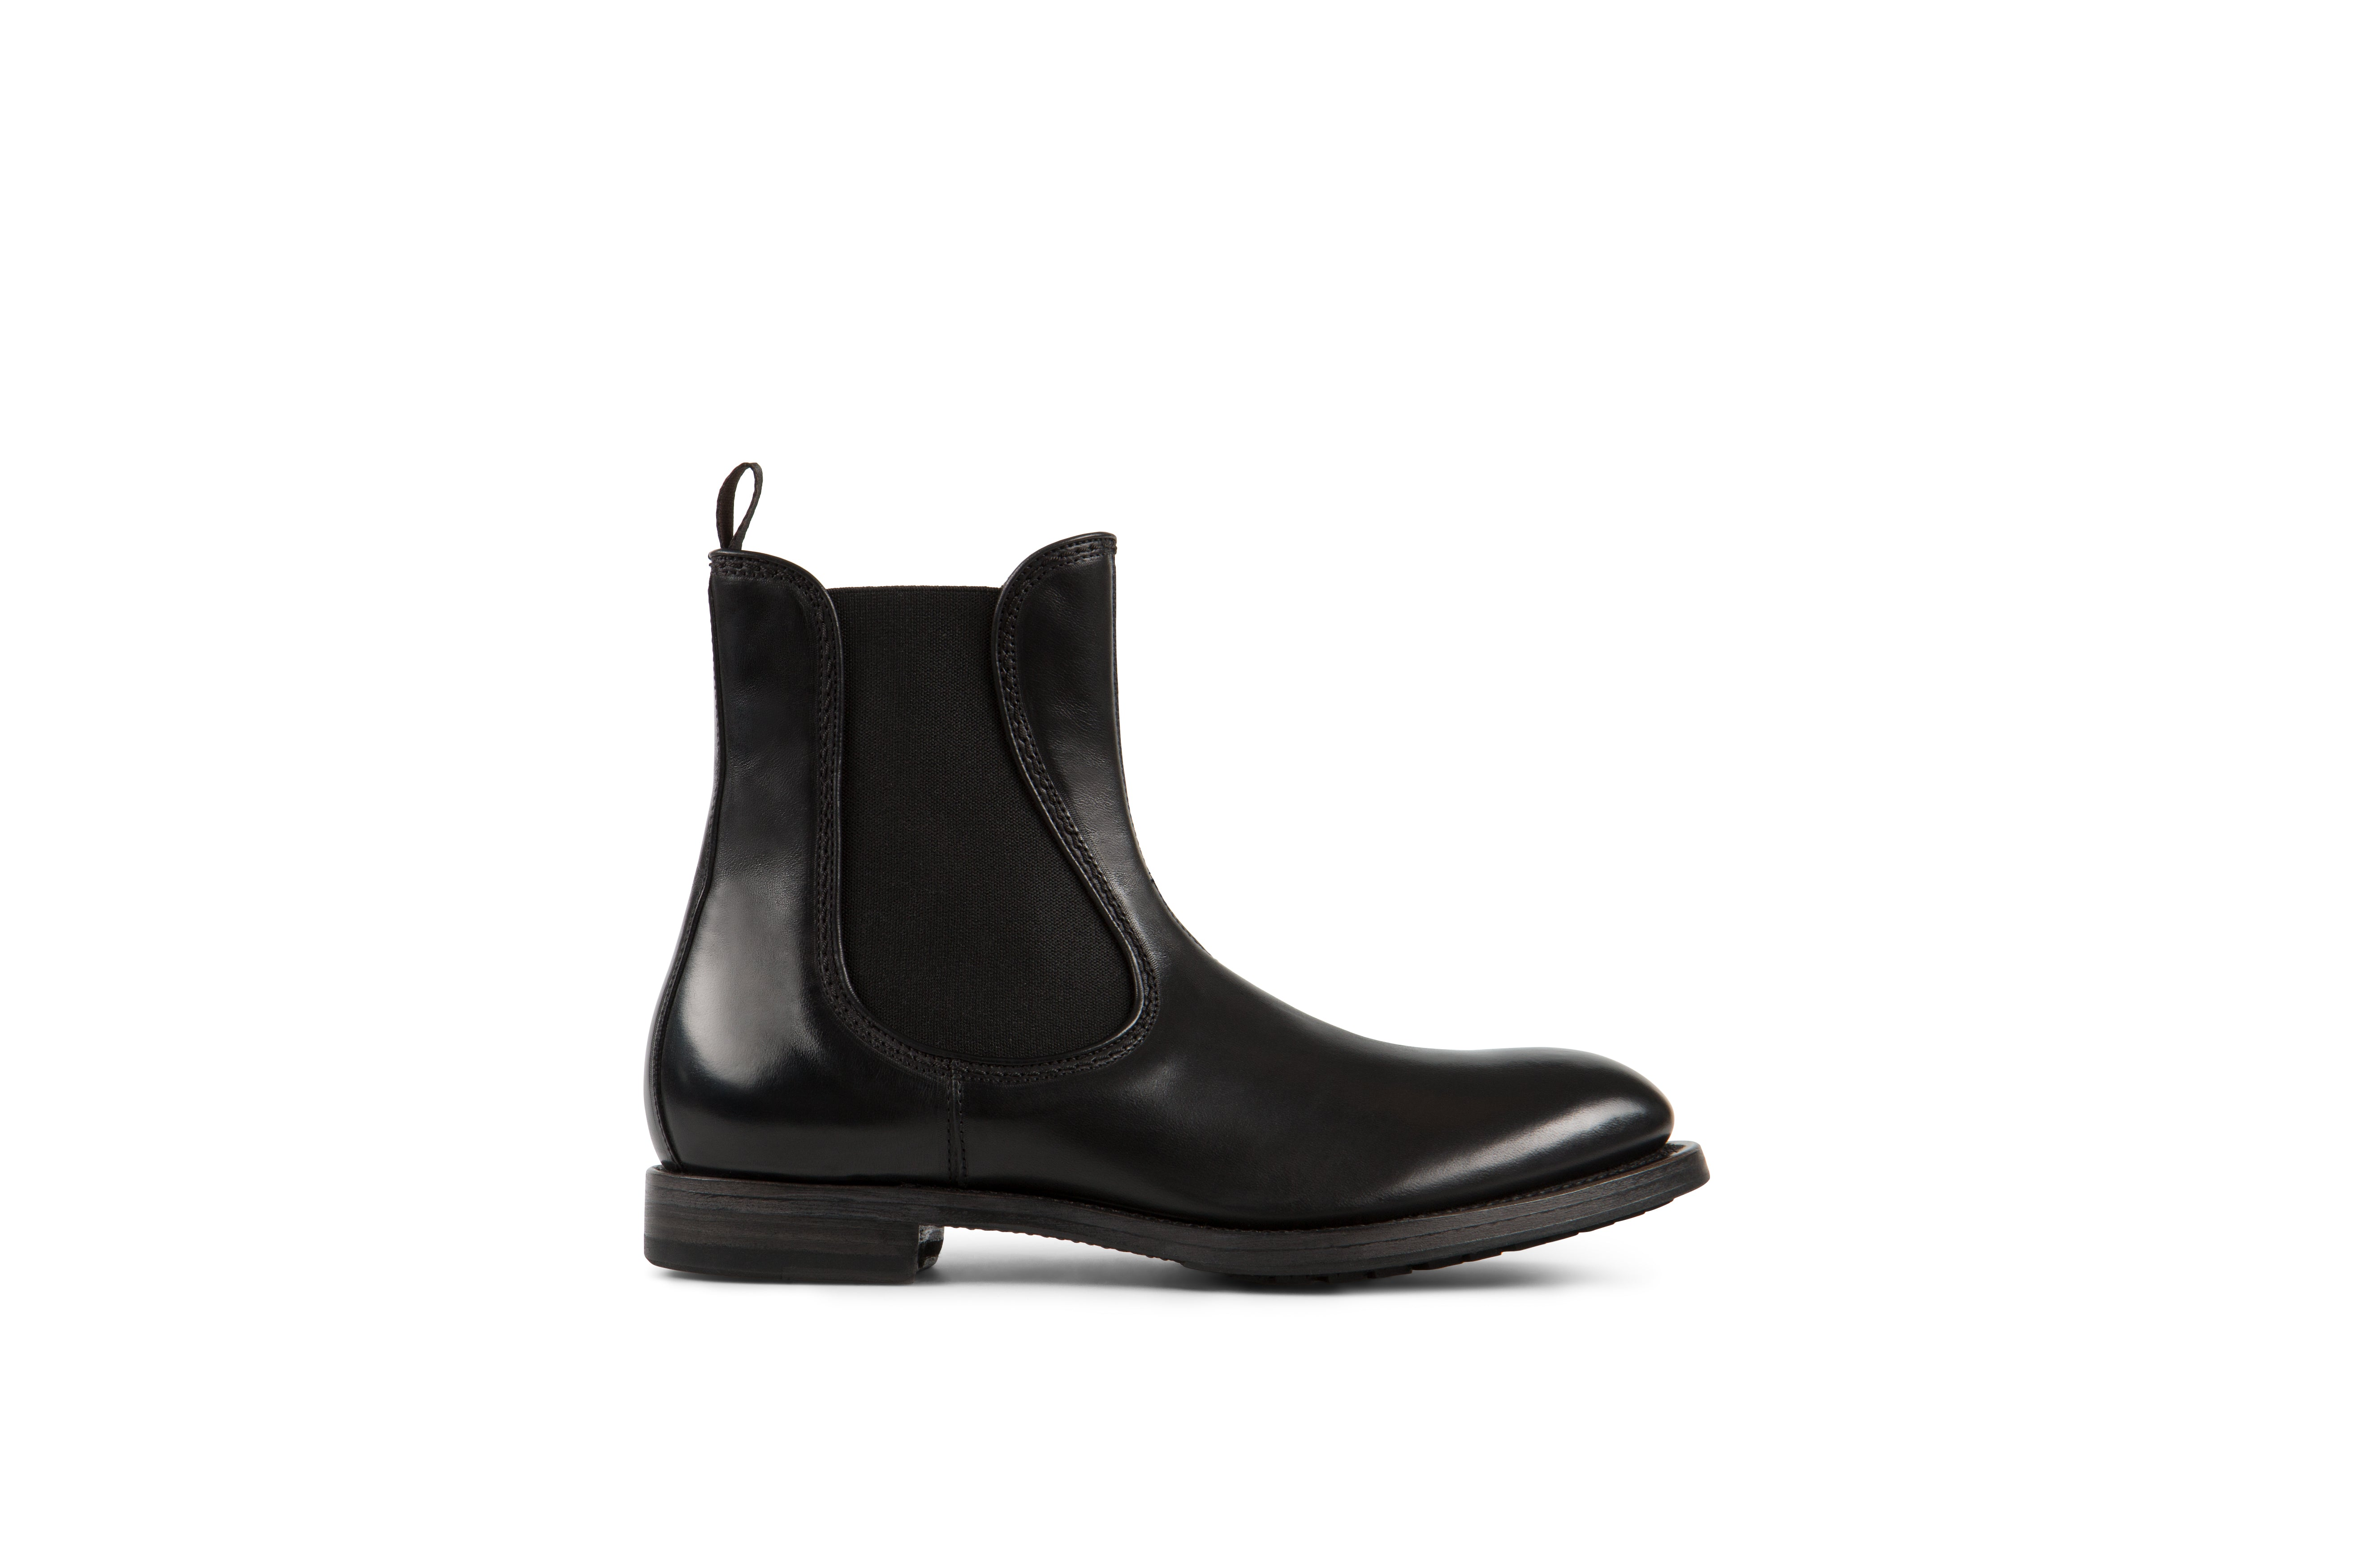 Icon Black Cordovan Leather Chelsea Boots